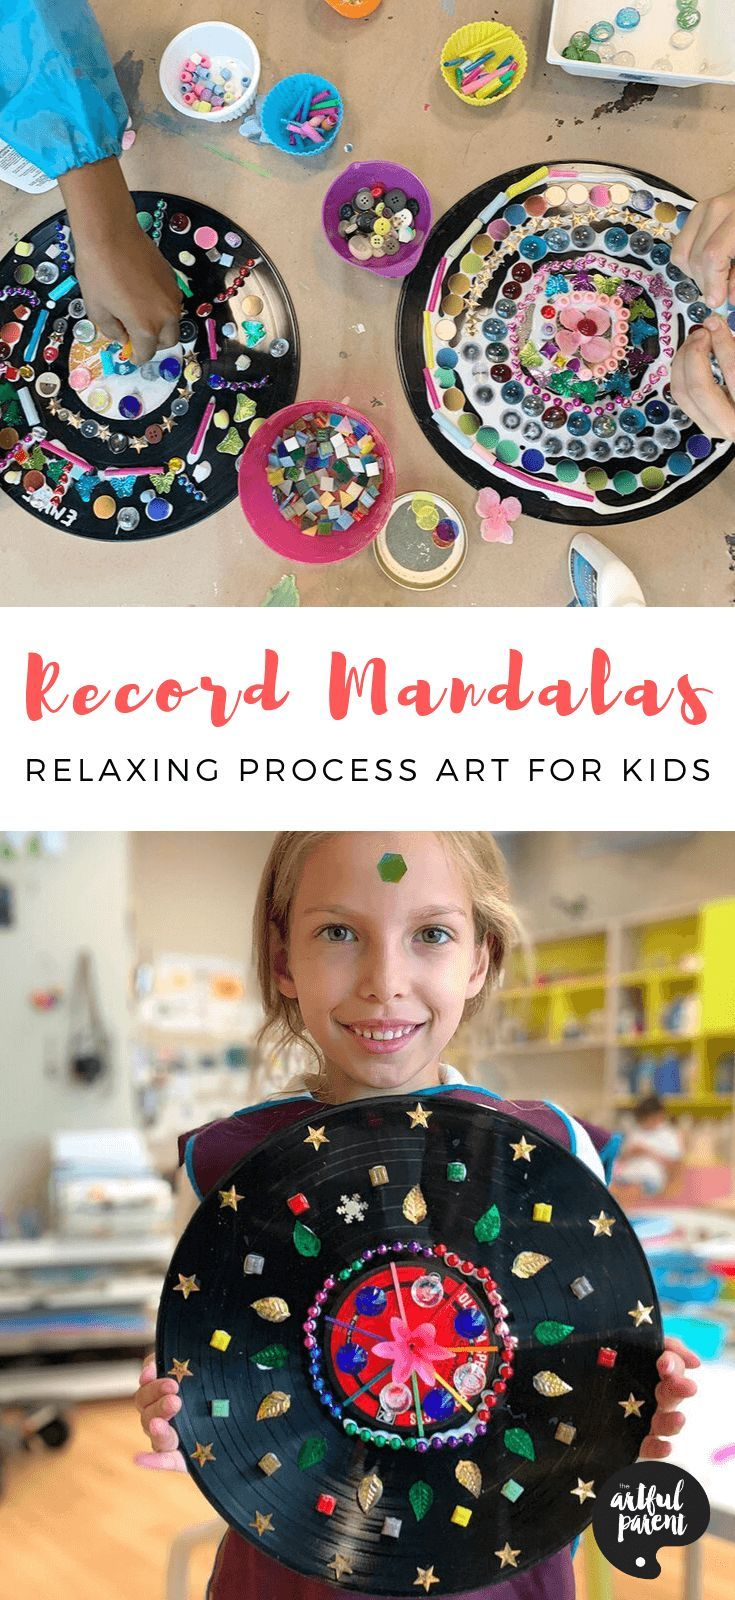 These Record Mandalas for Kids Are the Perfect Way to Relax & Unwind